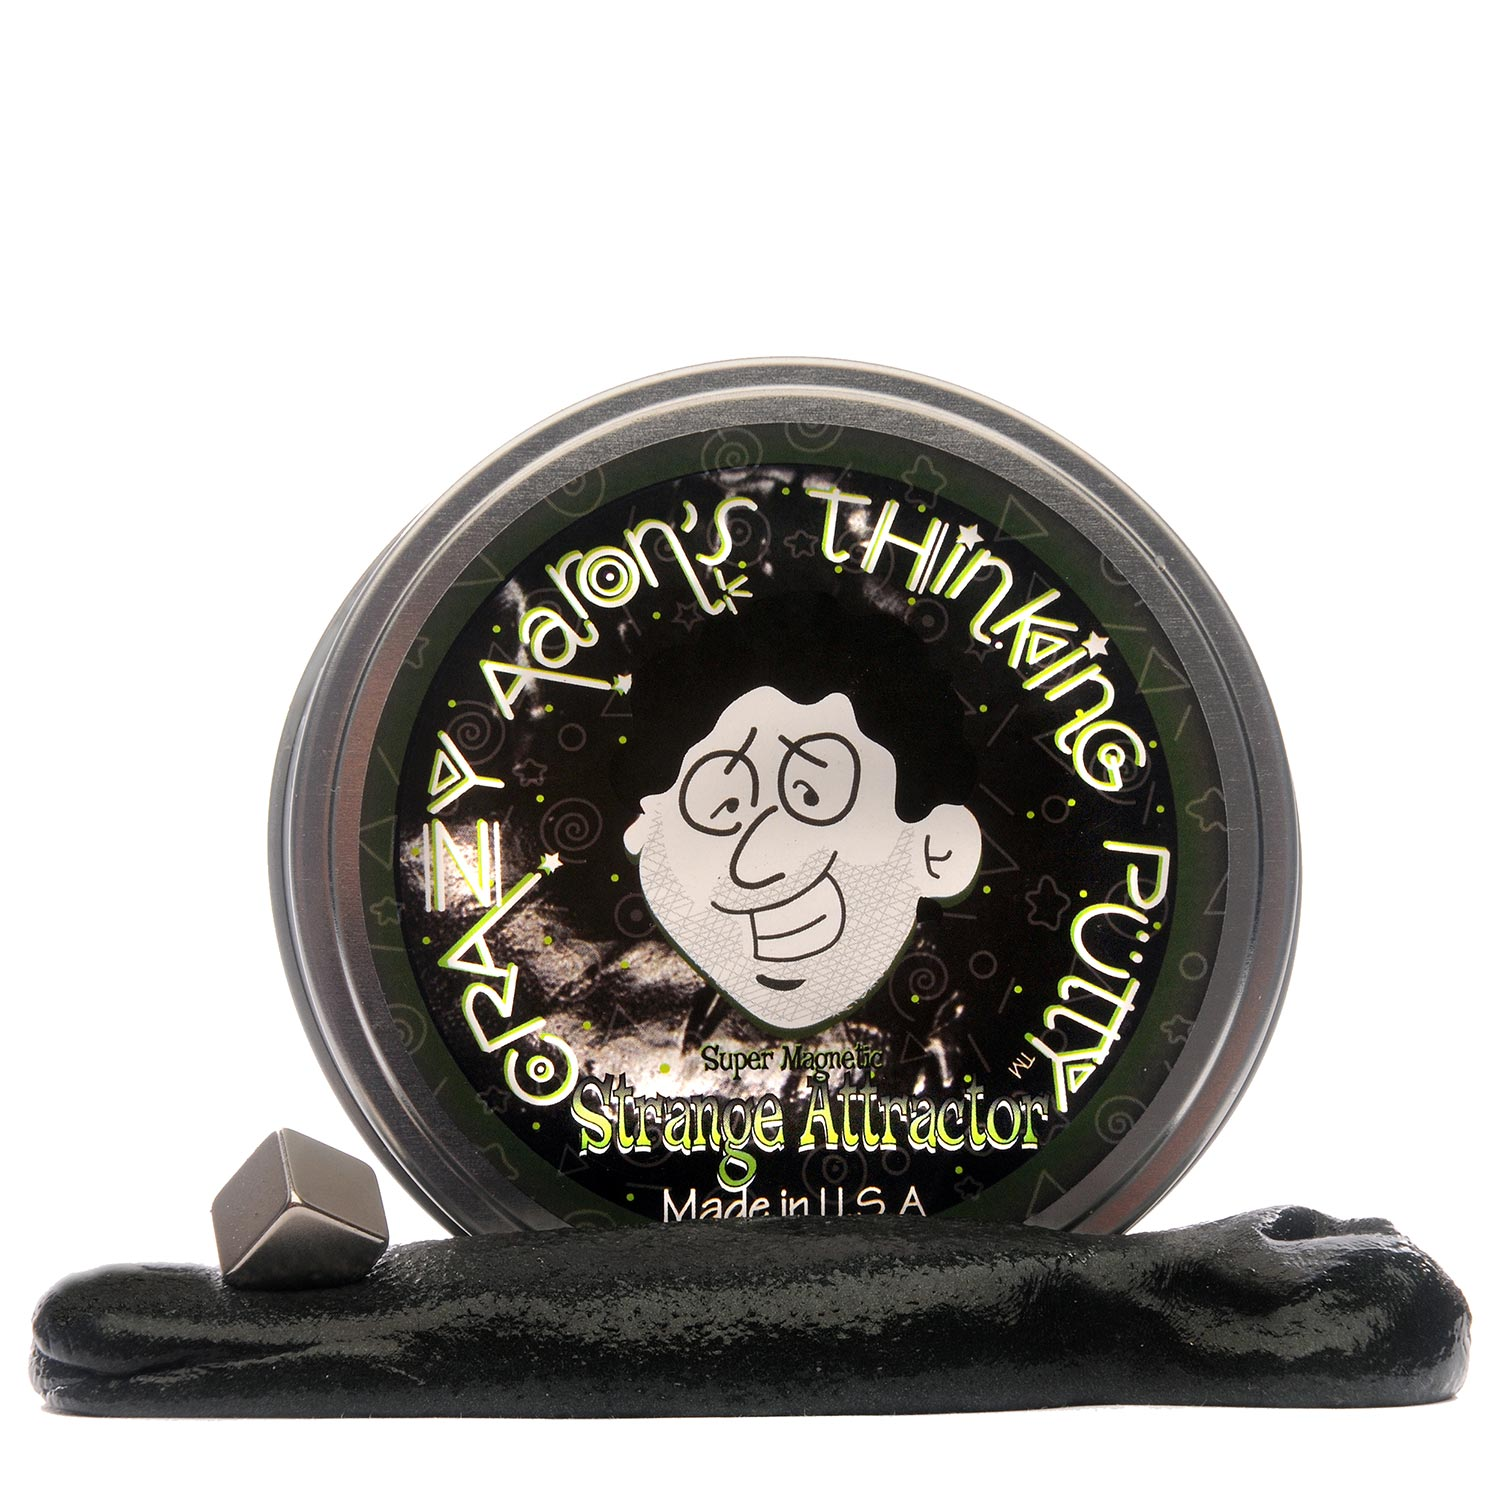 Super Magnetic Thinking Putty